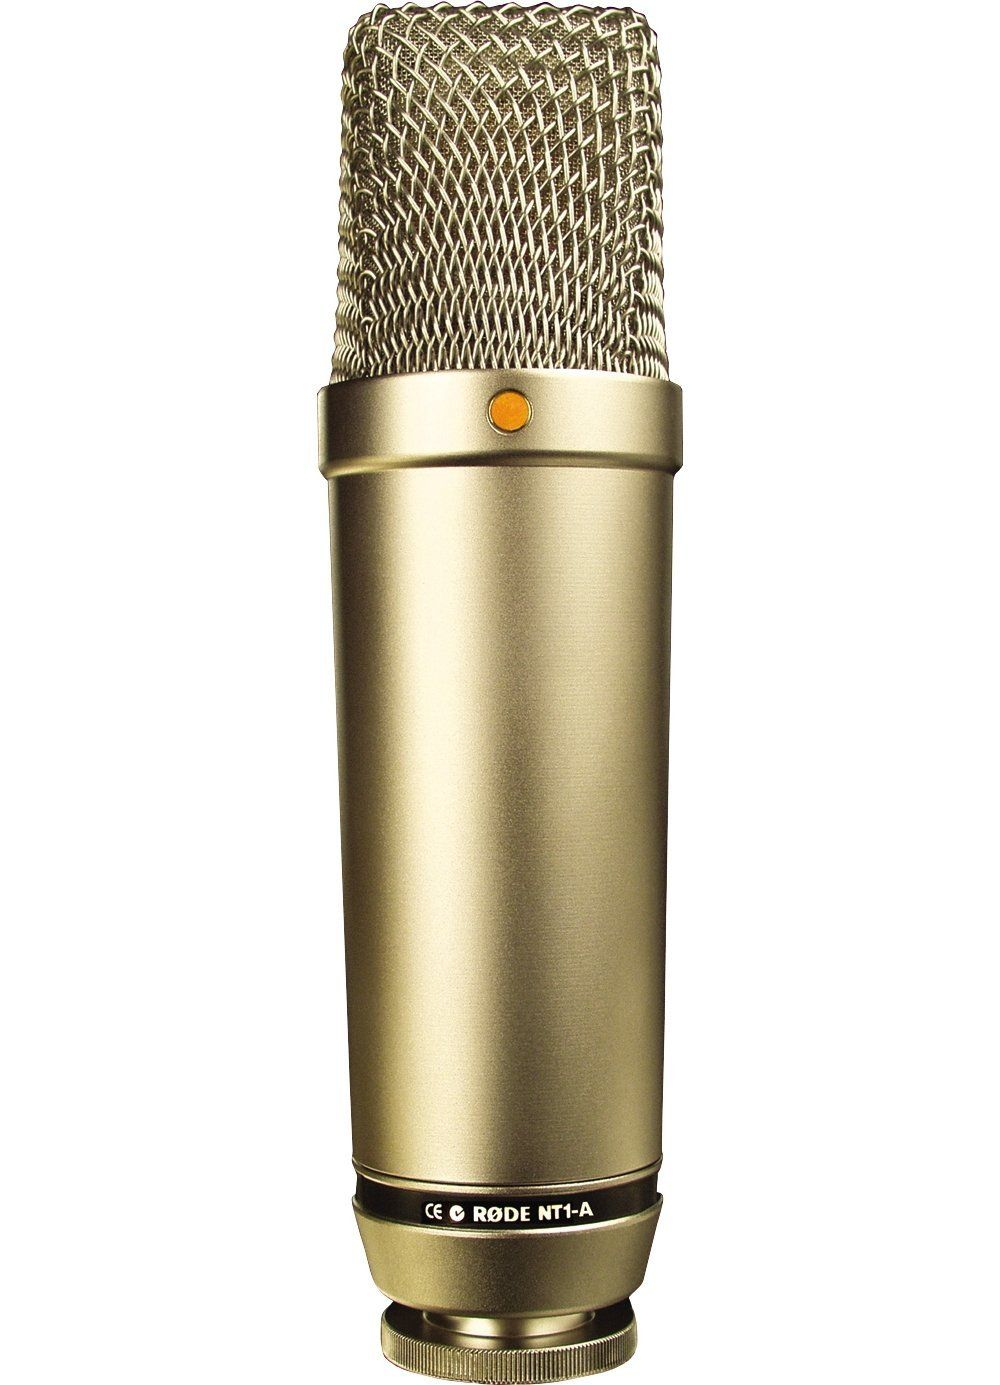 Rode Nt1 Amp Matched Pair Stereo Vocal Condenser Microphones Cardioid Large 1 Inch Capsule With Gold Plated Diaphrag Microphones Stereo Recording Microphone